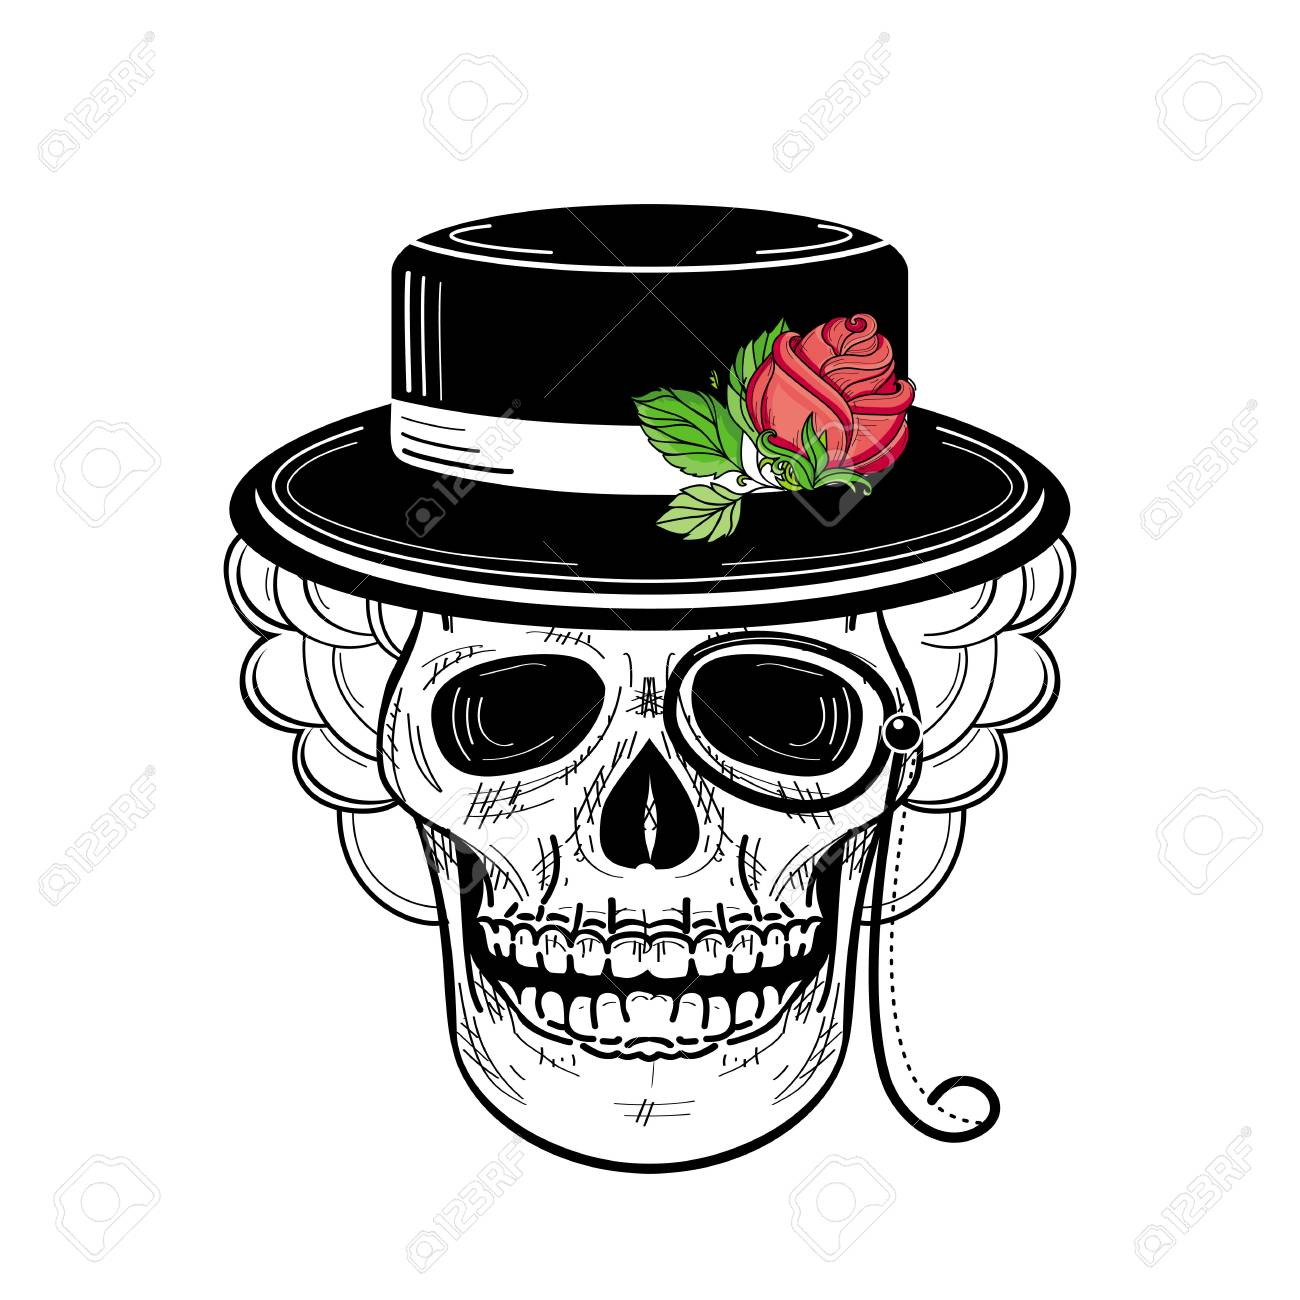 7c14af39ace Vector - vector sketch hand drawn skull tattoo black and whte in hat with  red rose with green stem and leaves and monocle. Isolated illustration on a  white ...